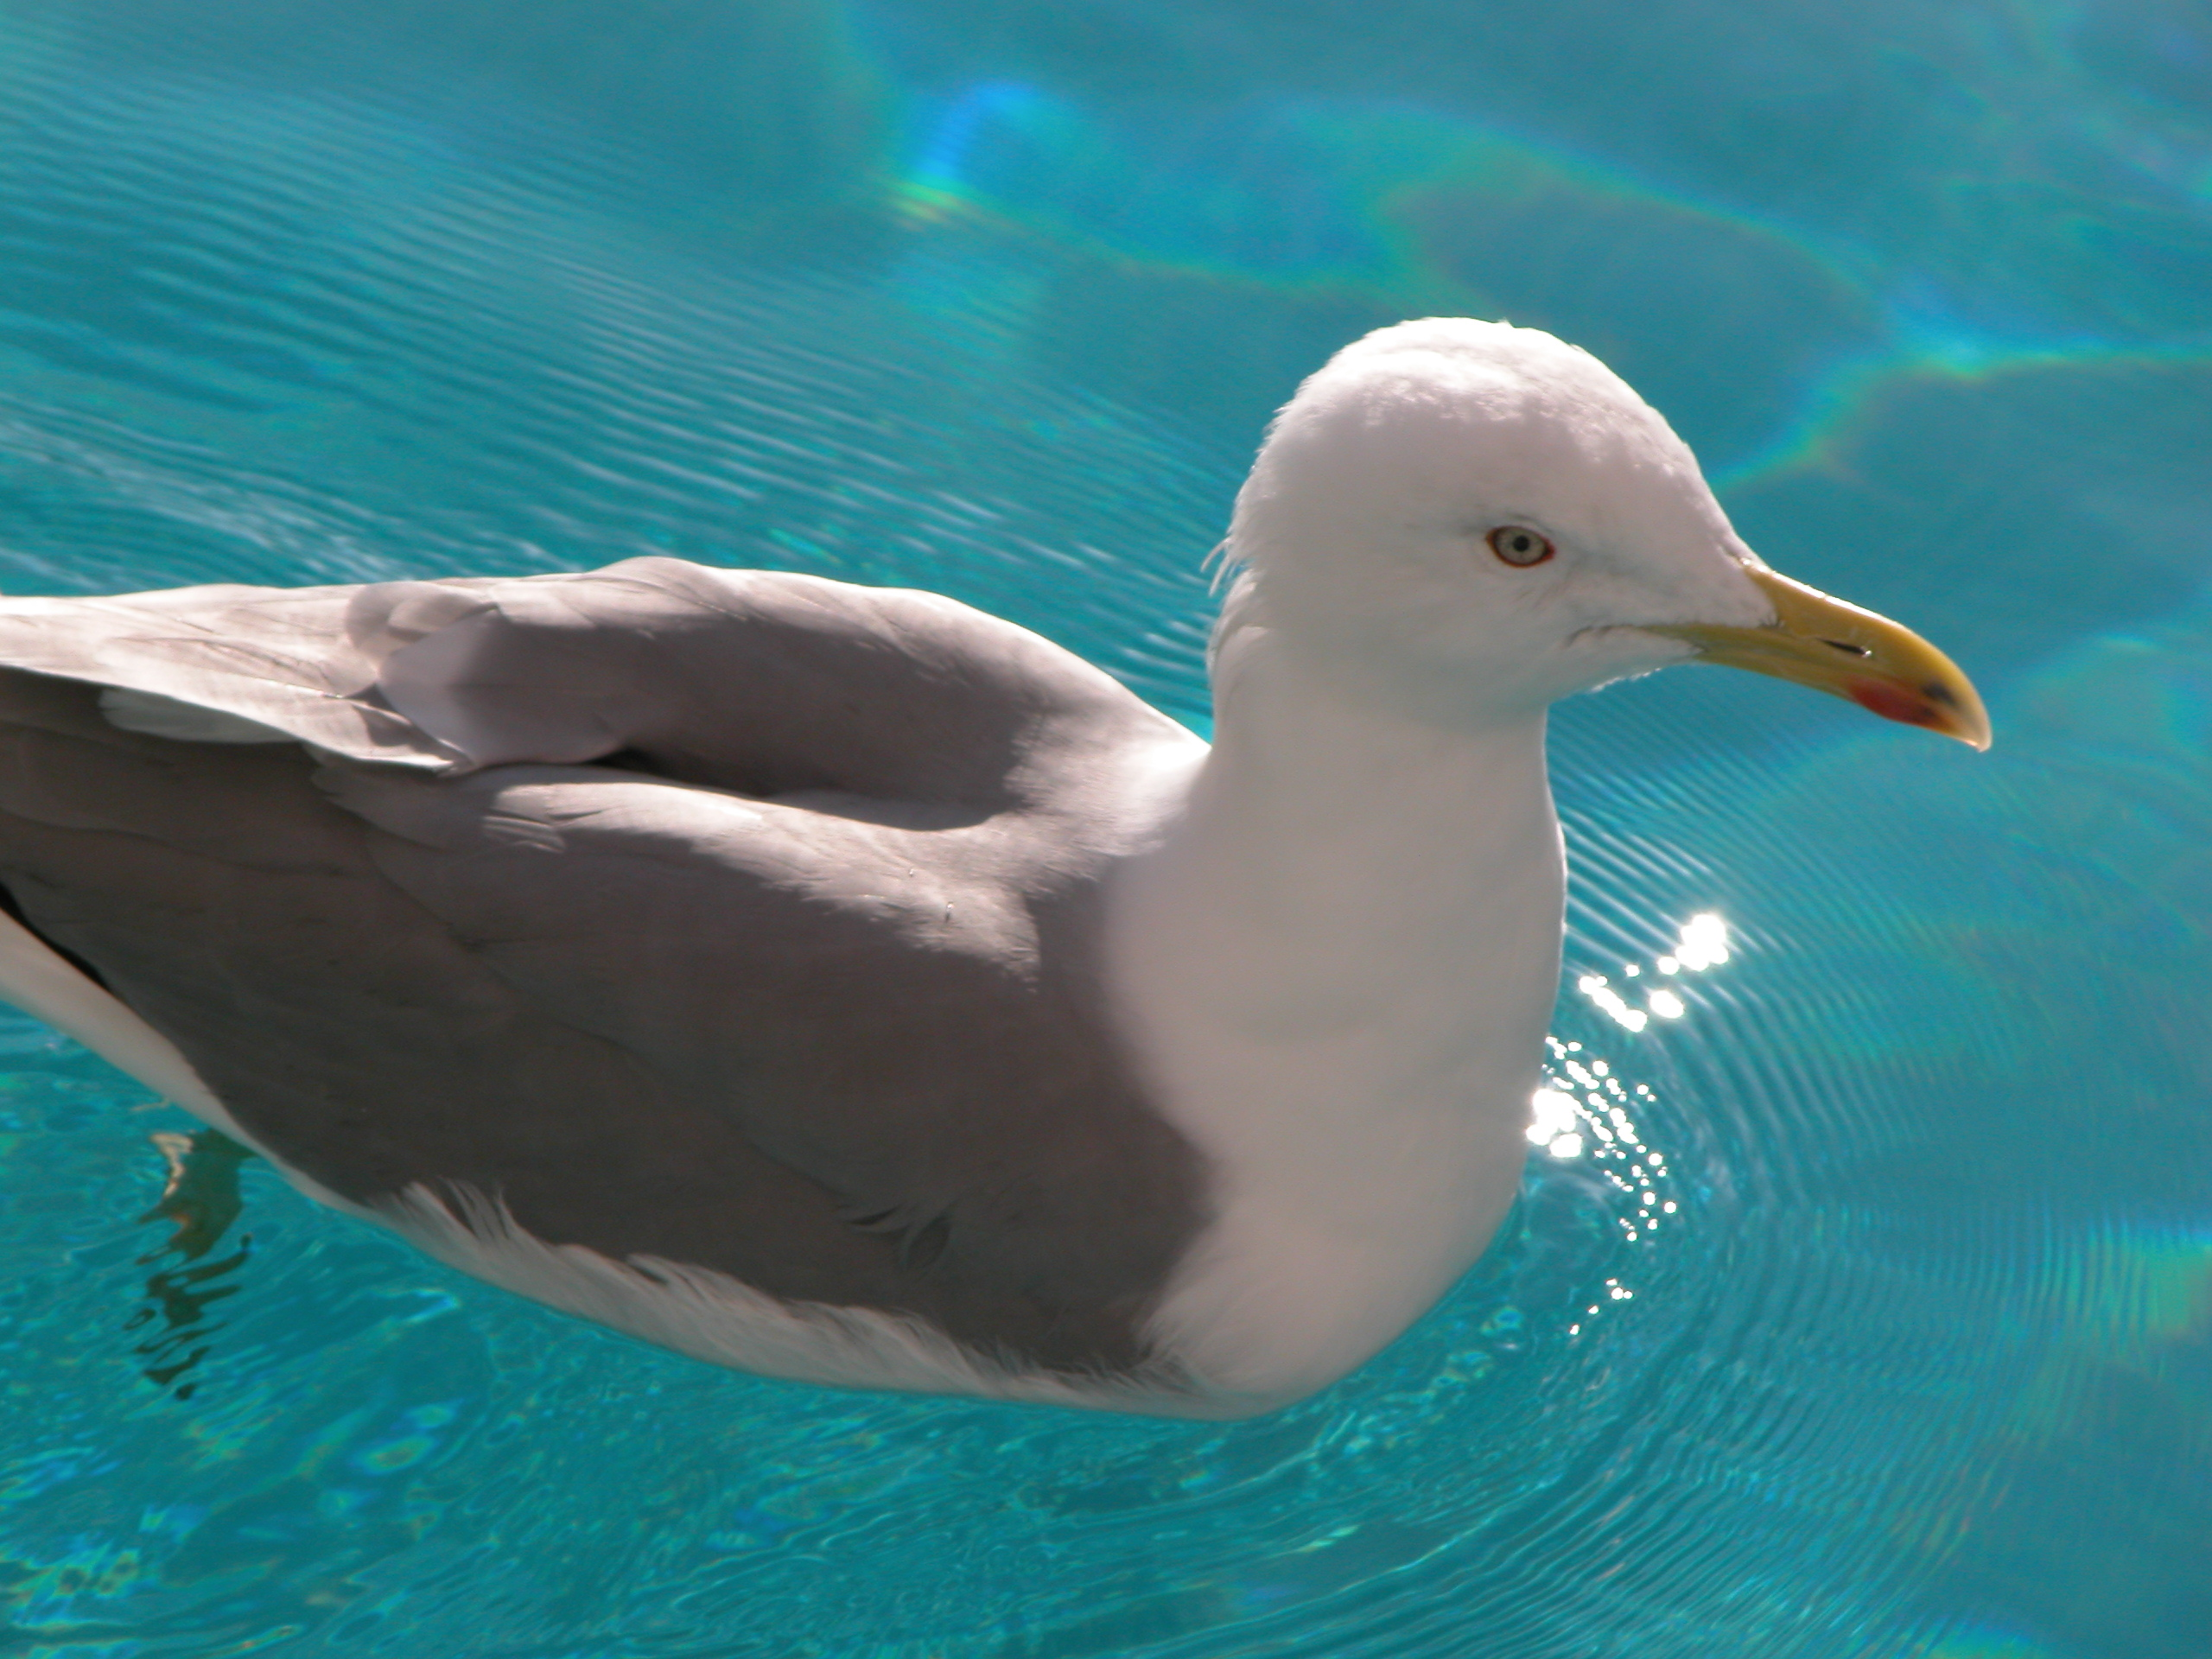 seagull in blue water feathers bird